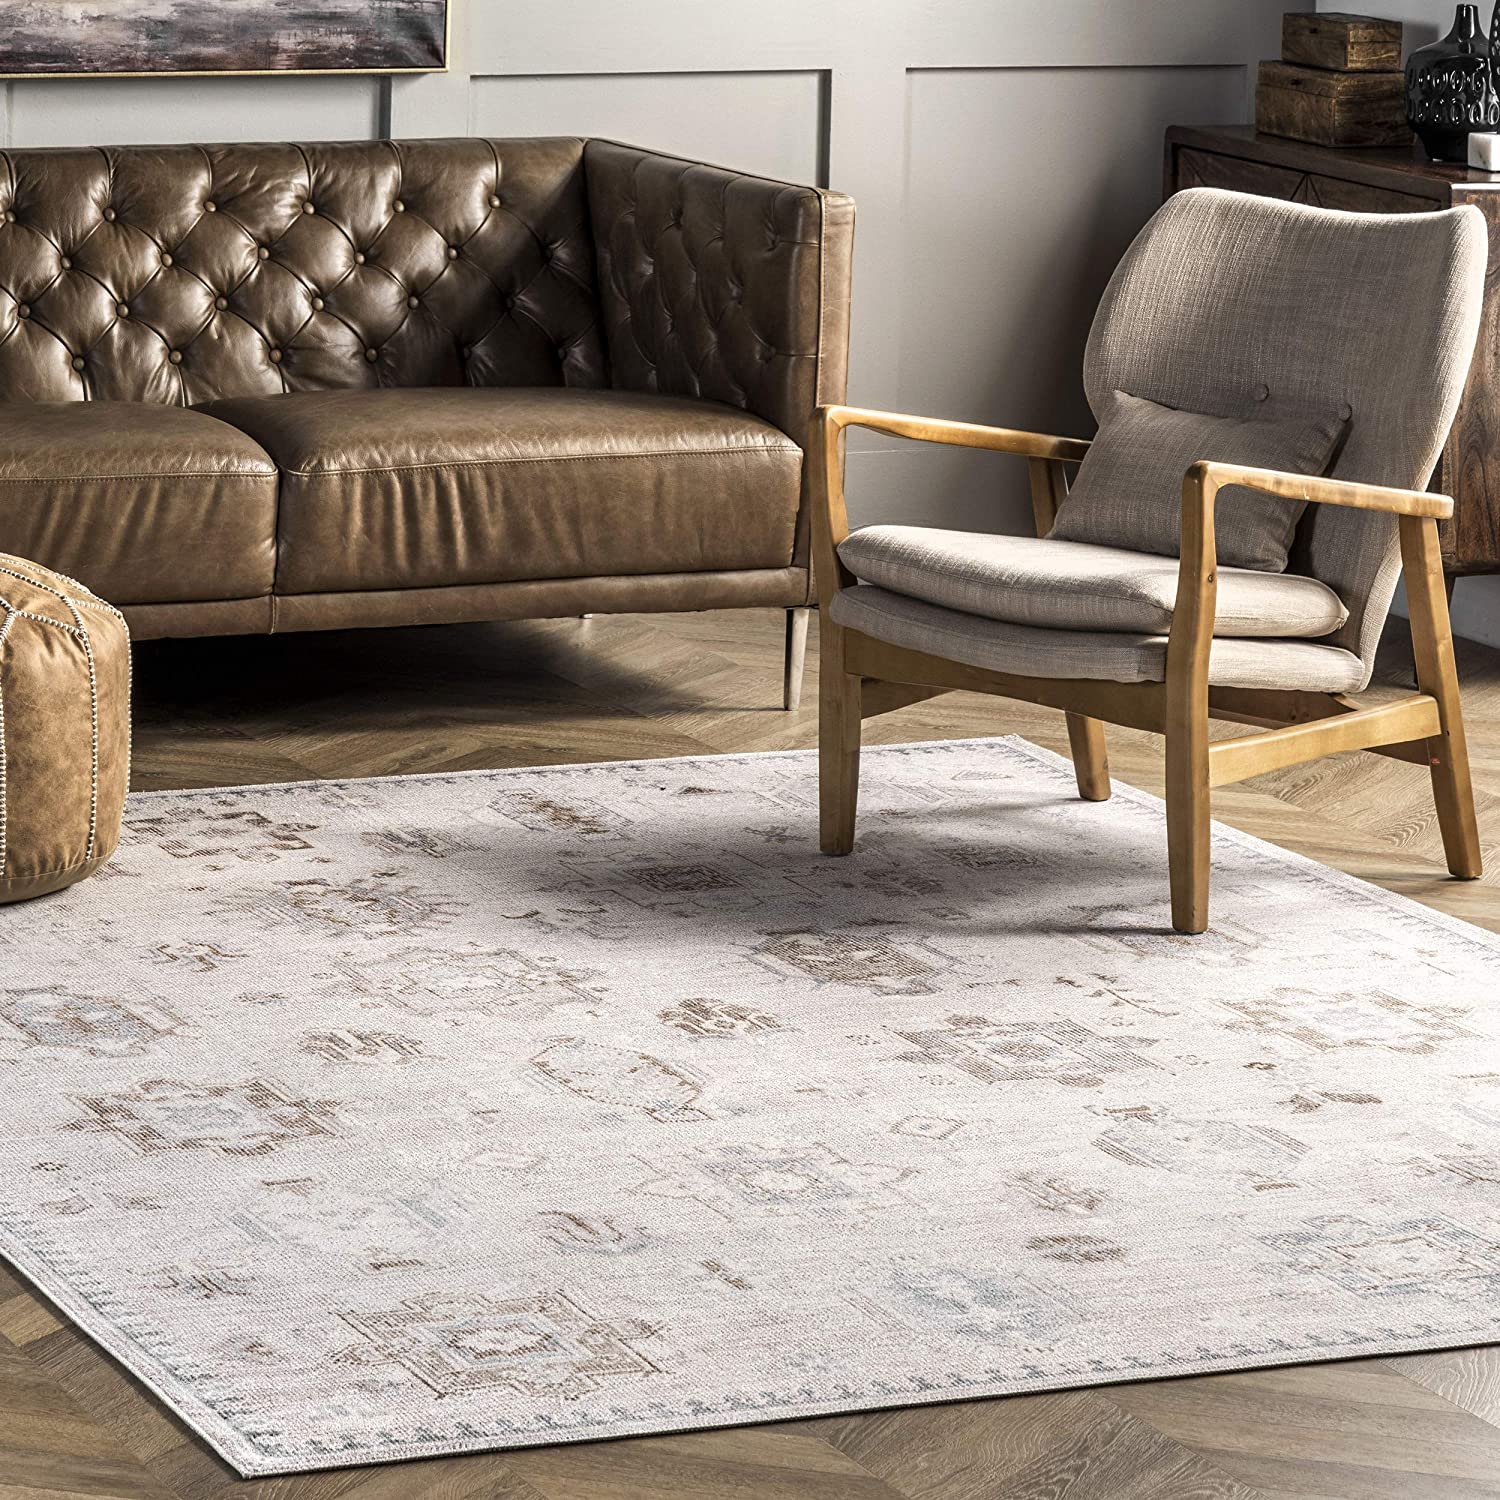 nuLOOM Krystin Machine 2021 new Washable Distressed Area 6' x Rug Be A surprise price is realized 4'